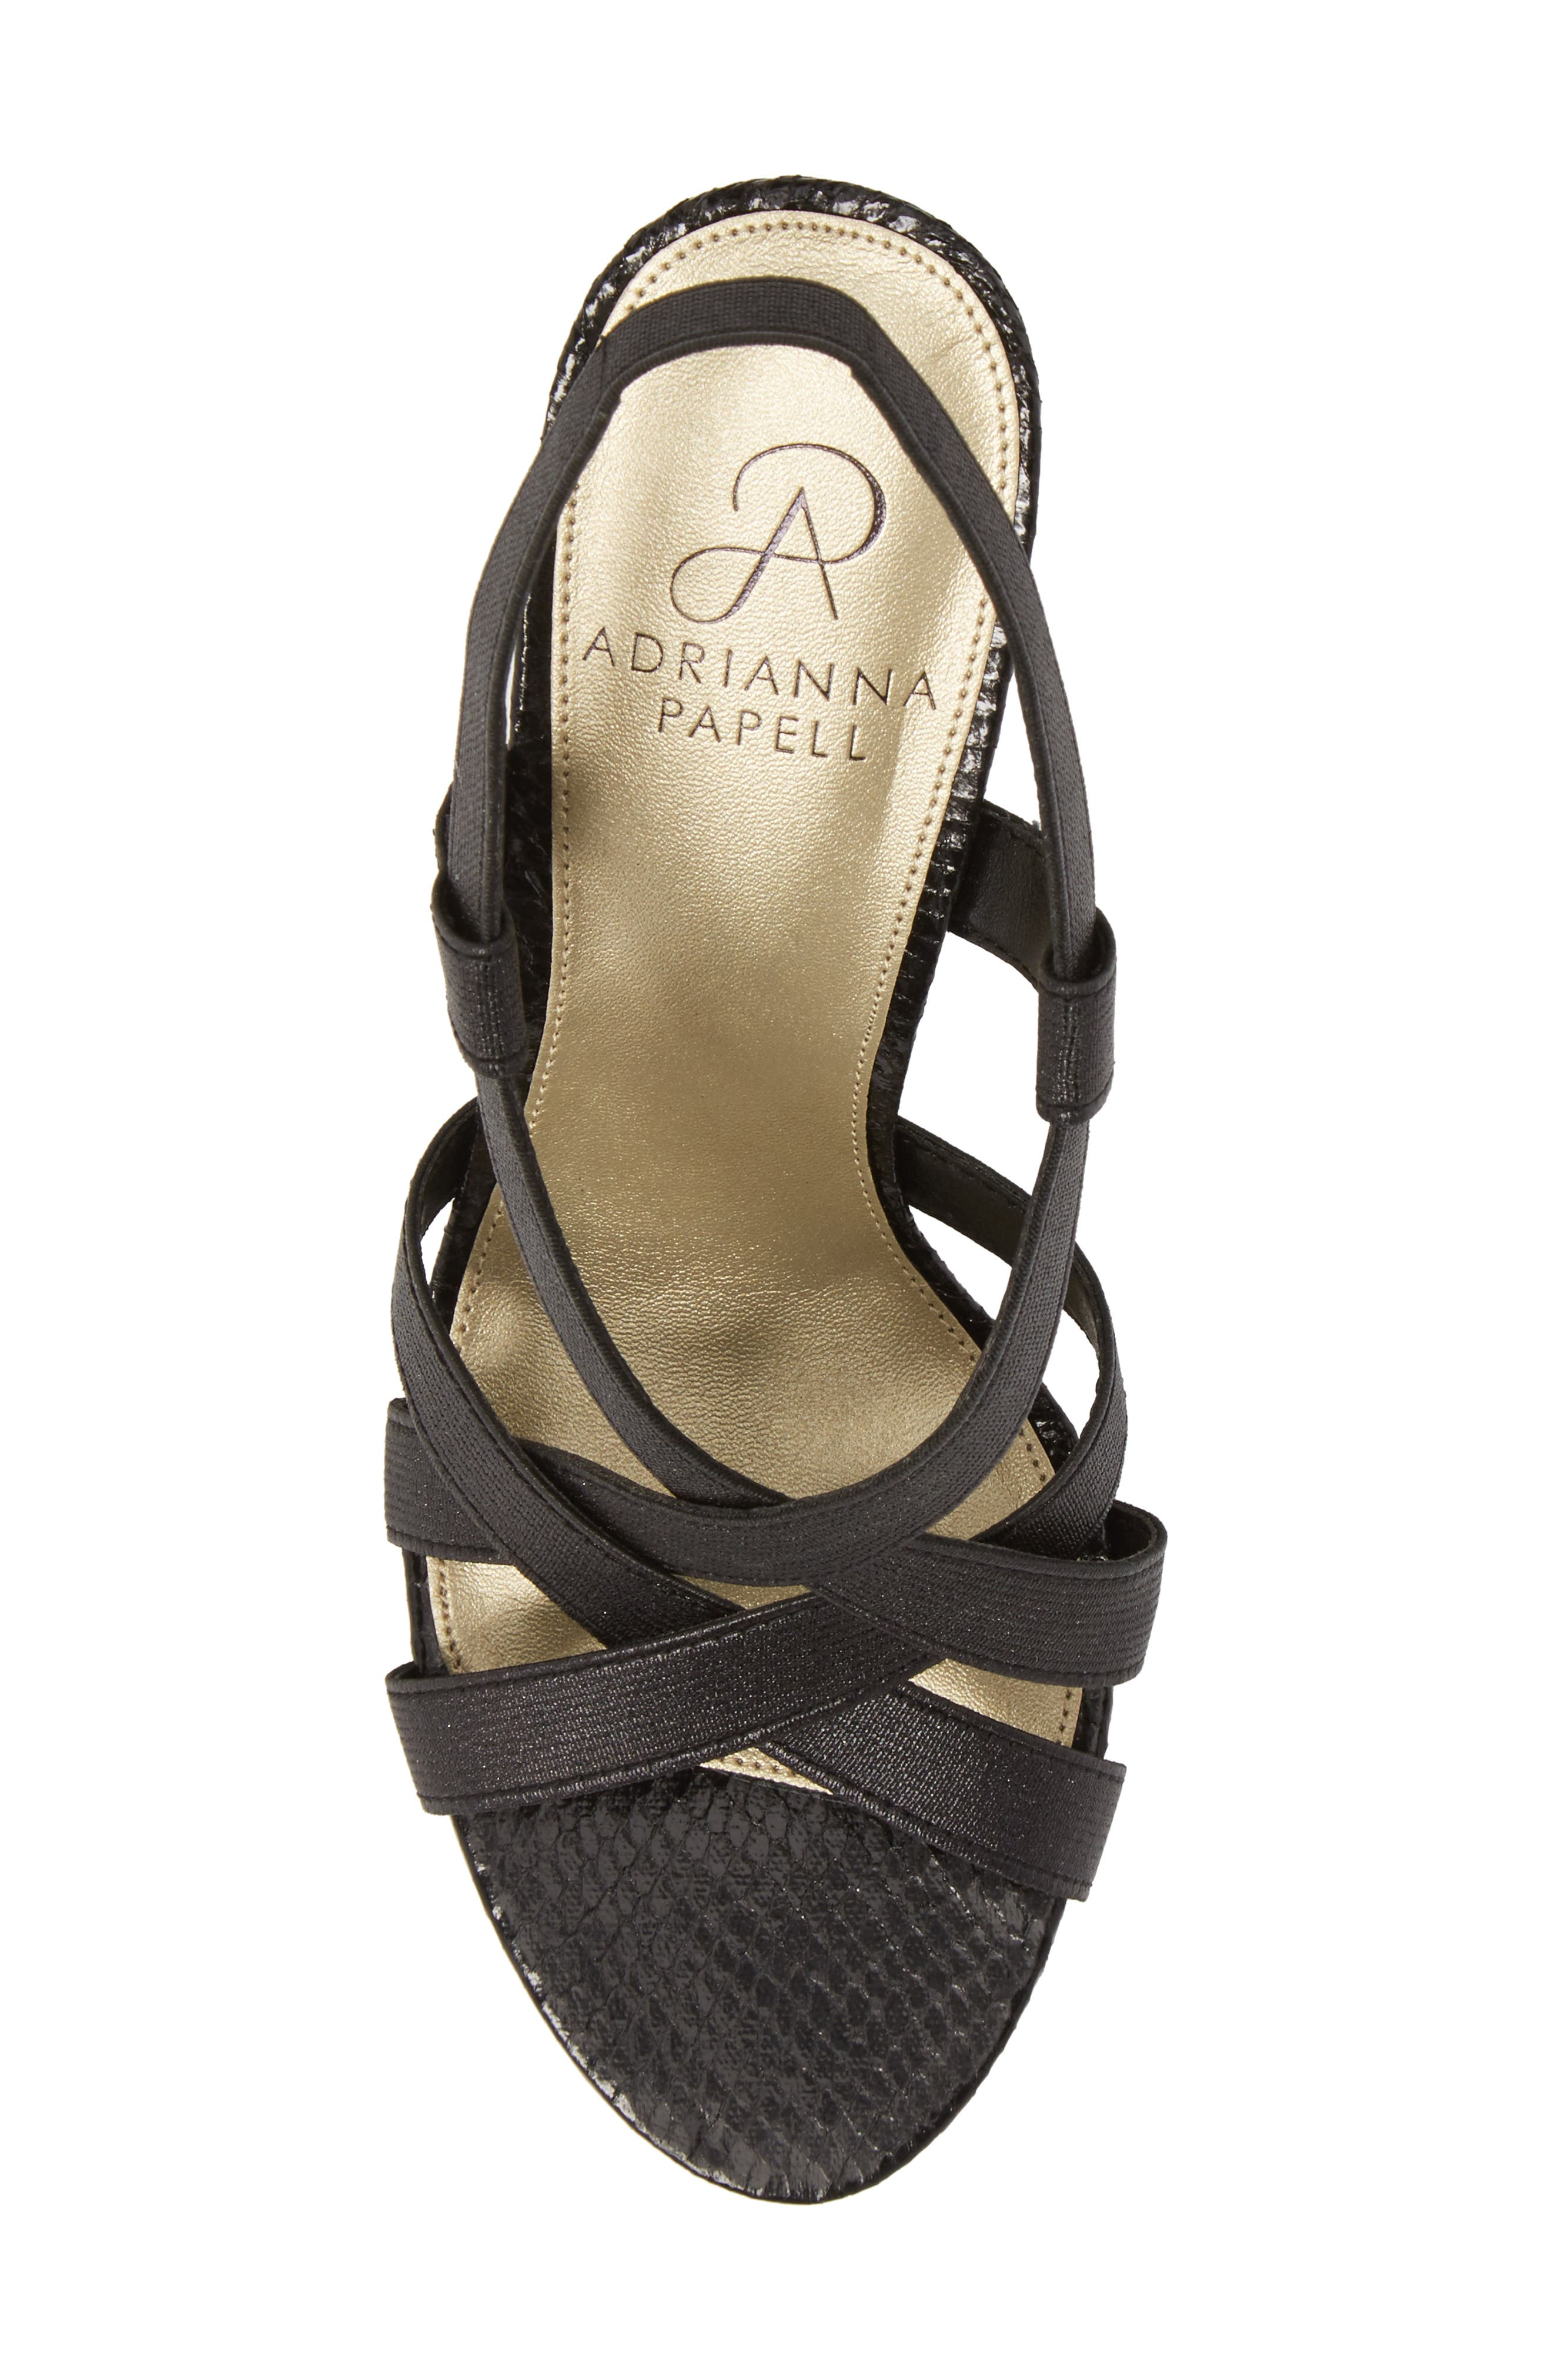 ADRIANNA PAPELL,                             Addie Sandal,                             Alternate thumbnail 5, color,                             001